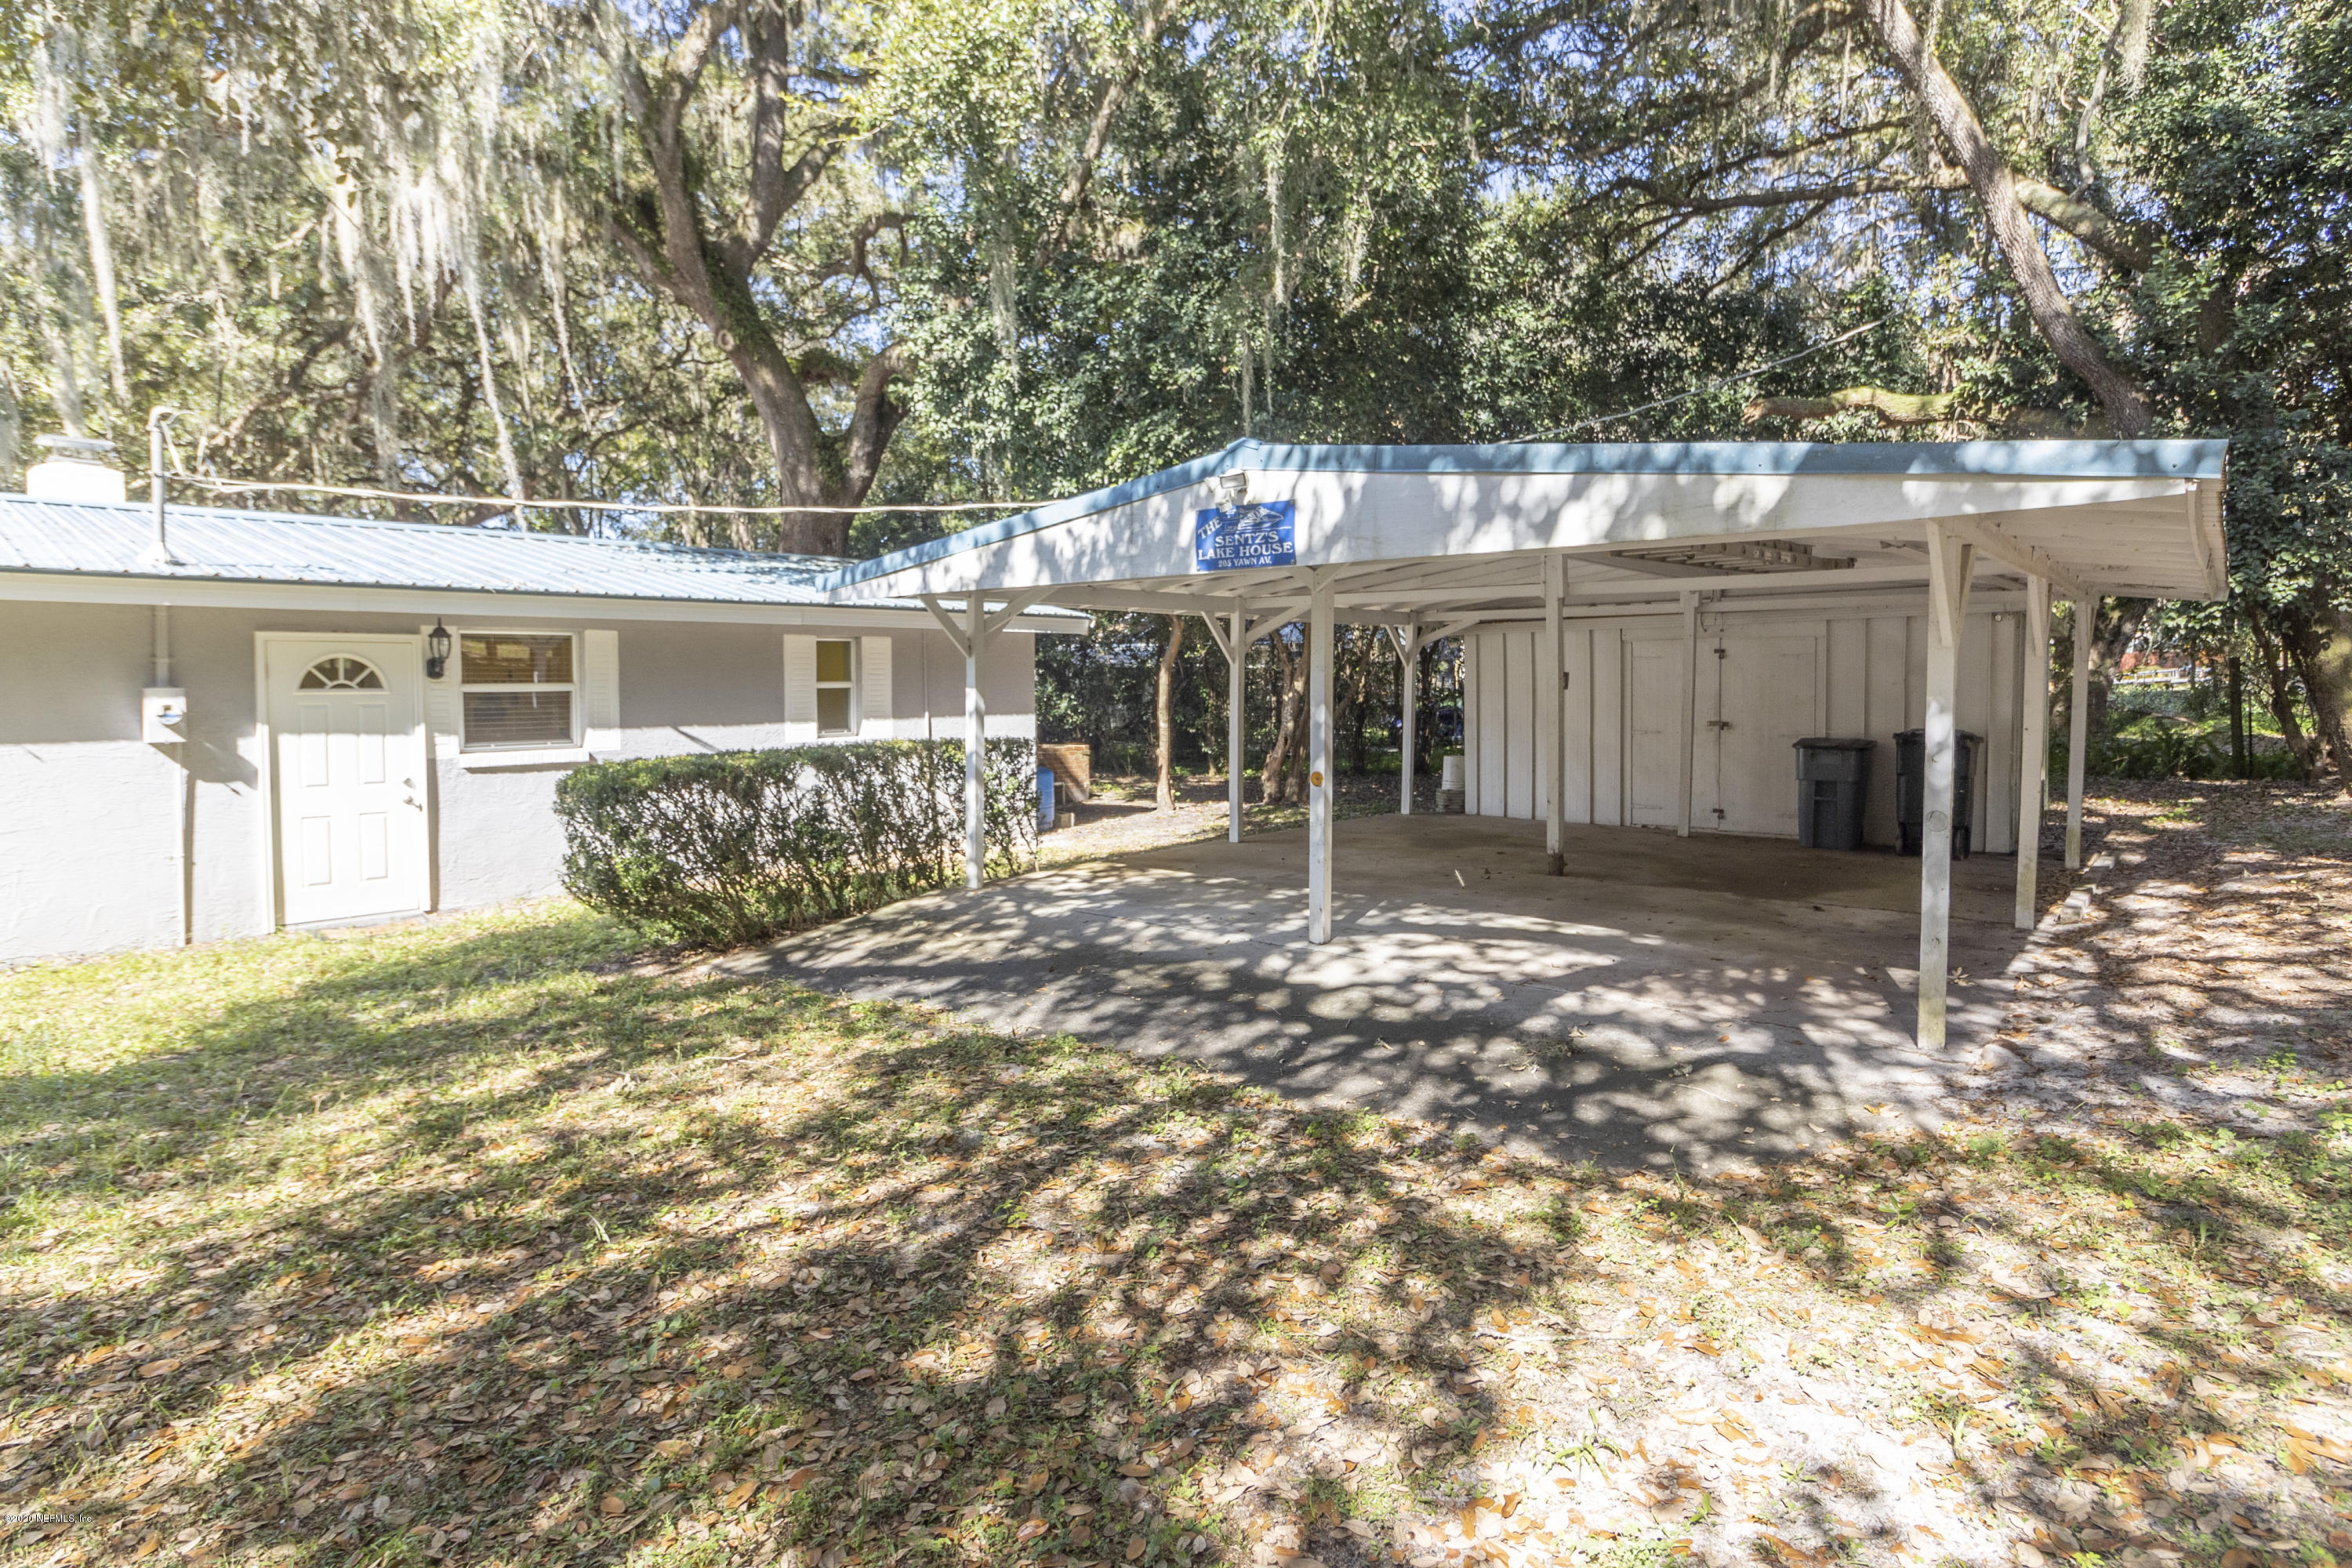 205 YAWN, INTERLACHEN, FLORIDA 32148, 4 Bedrooms Bedrooms, ,4 BathroomsBathrooms,Residential,For sale,YAWN,1080187